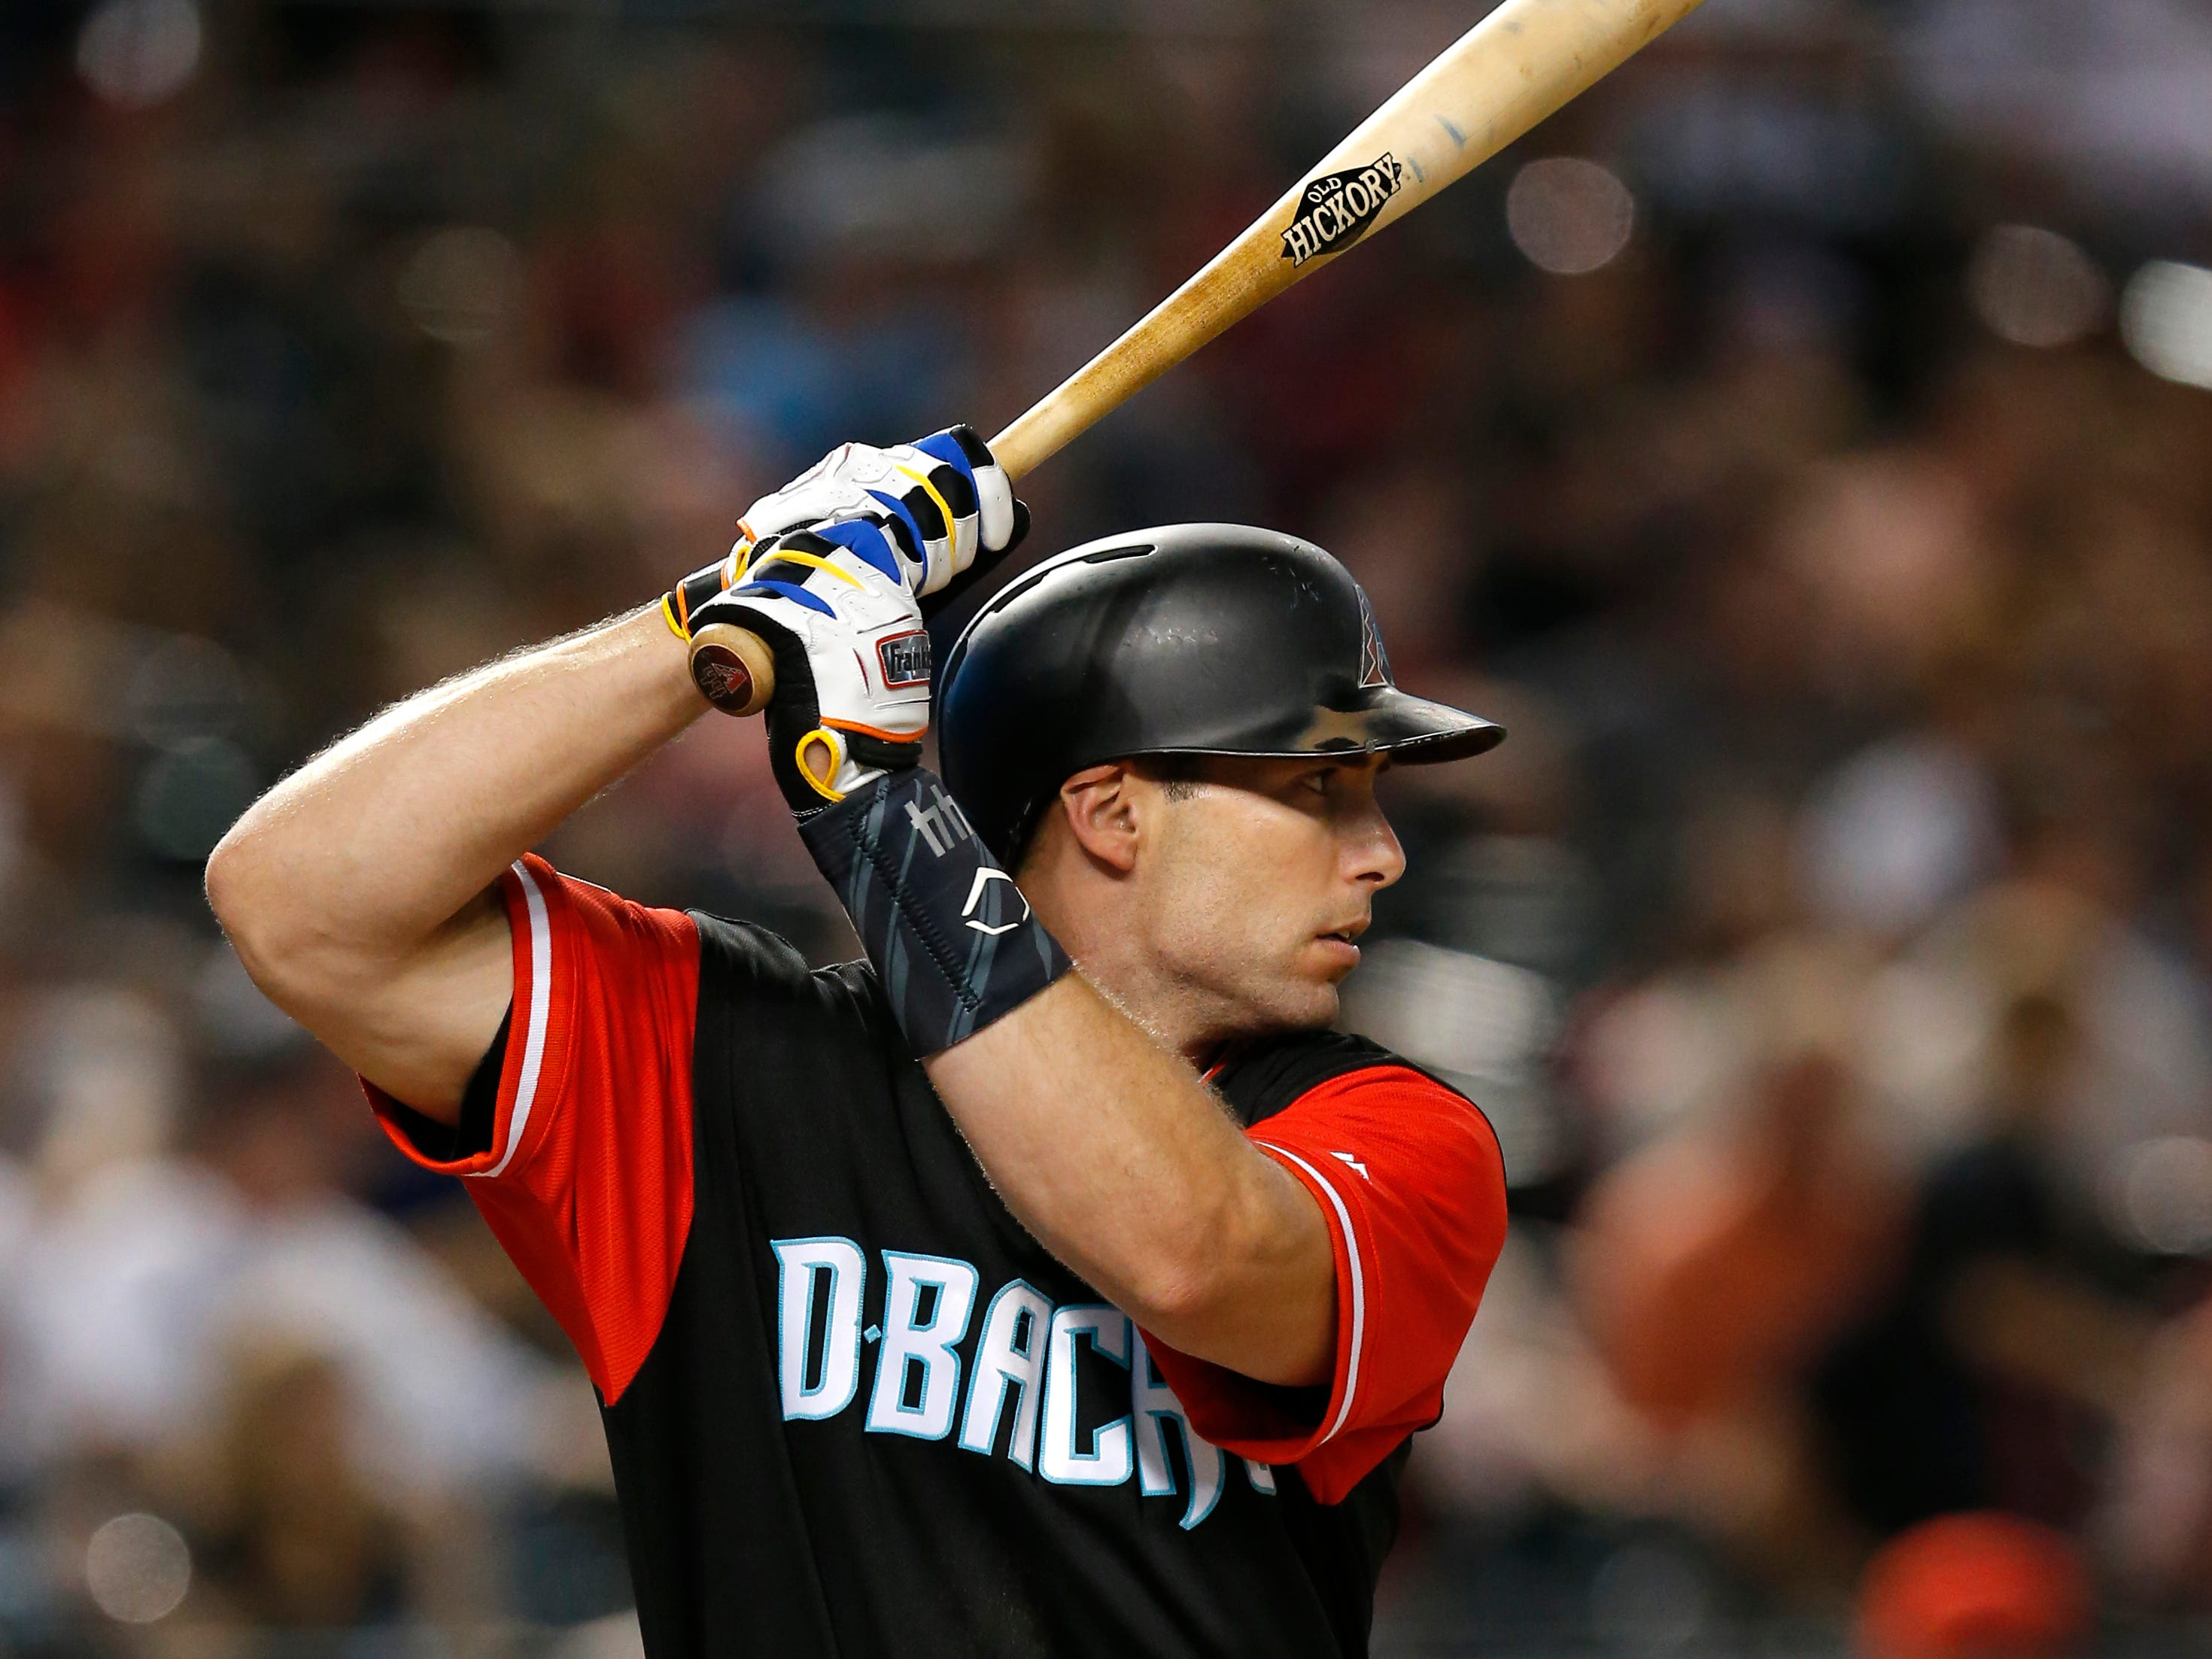 Arizona Diamondbacks first baseman Paul Goldschmidt (44) in the first inning during a baseball game against the Seattle Mariners, Friday, Aug. 24, 2018, in Phoenix.